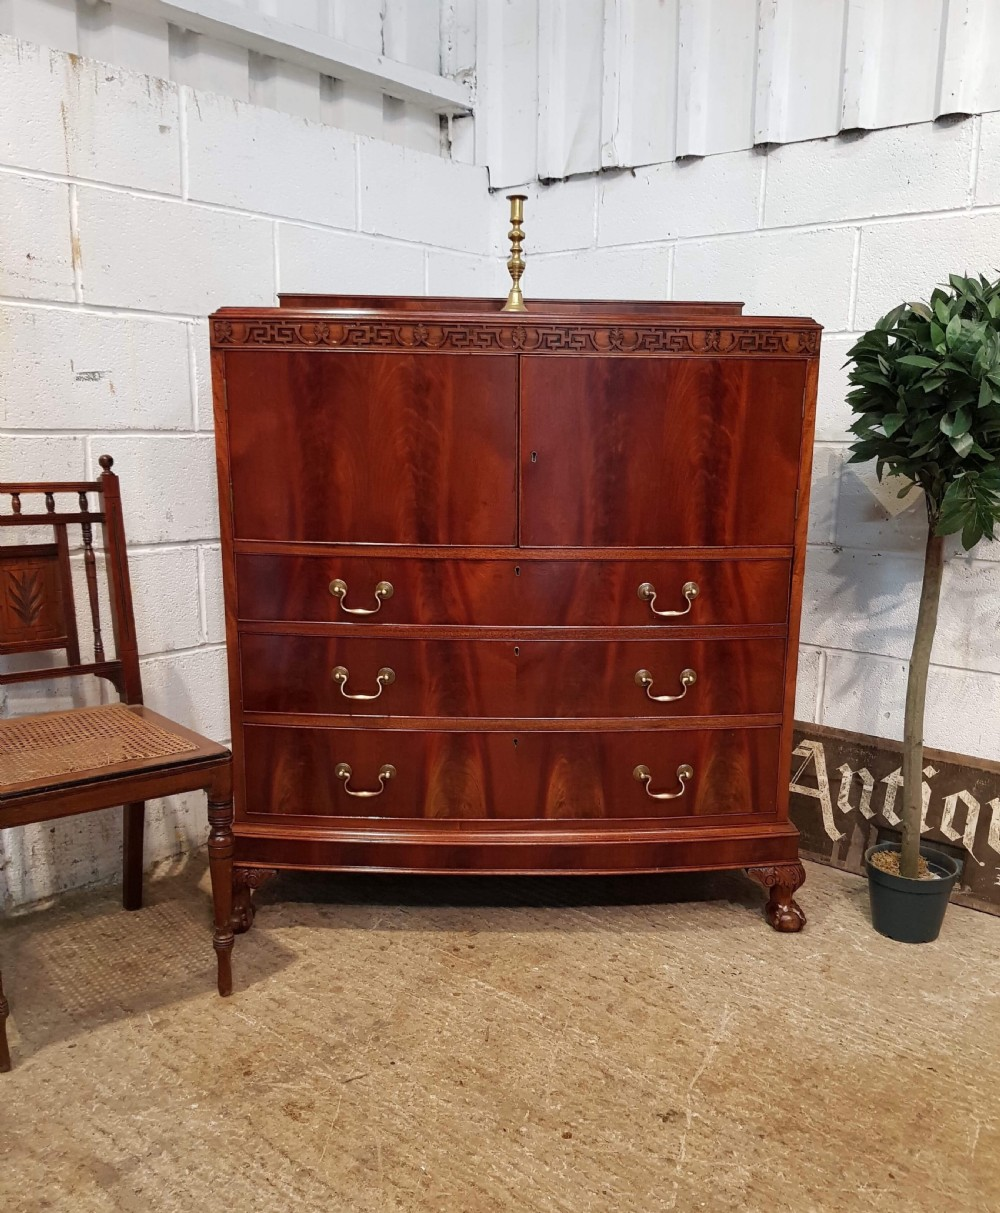 antique edwardian mahogany bow front tallboy chest of drawers c1920